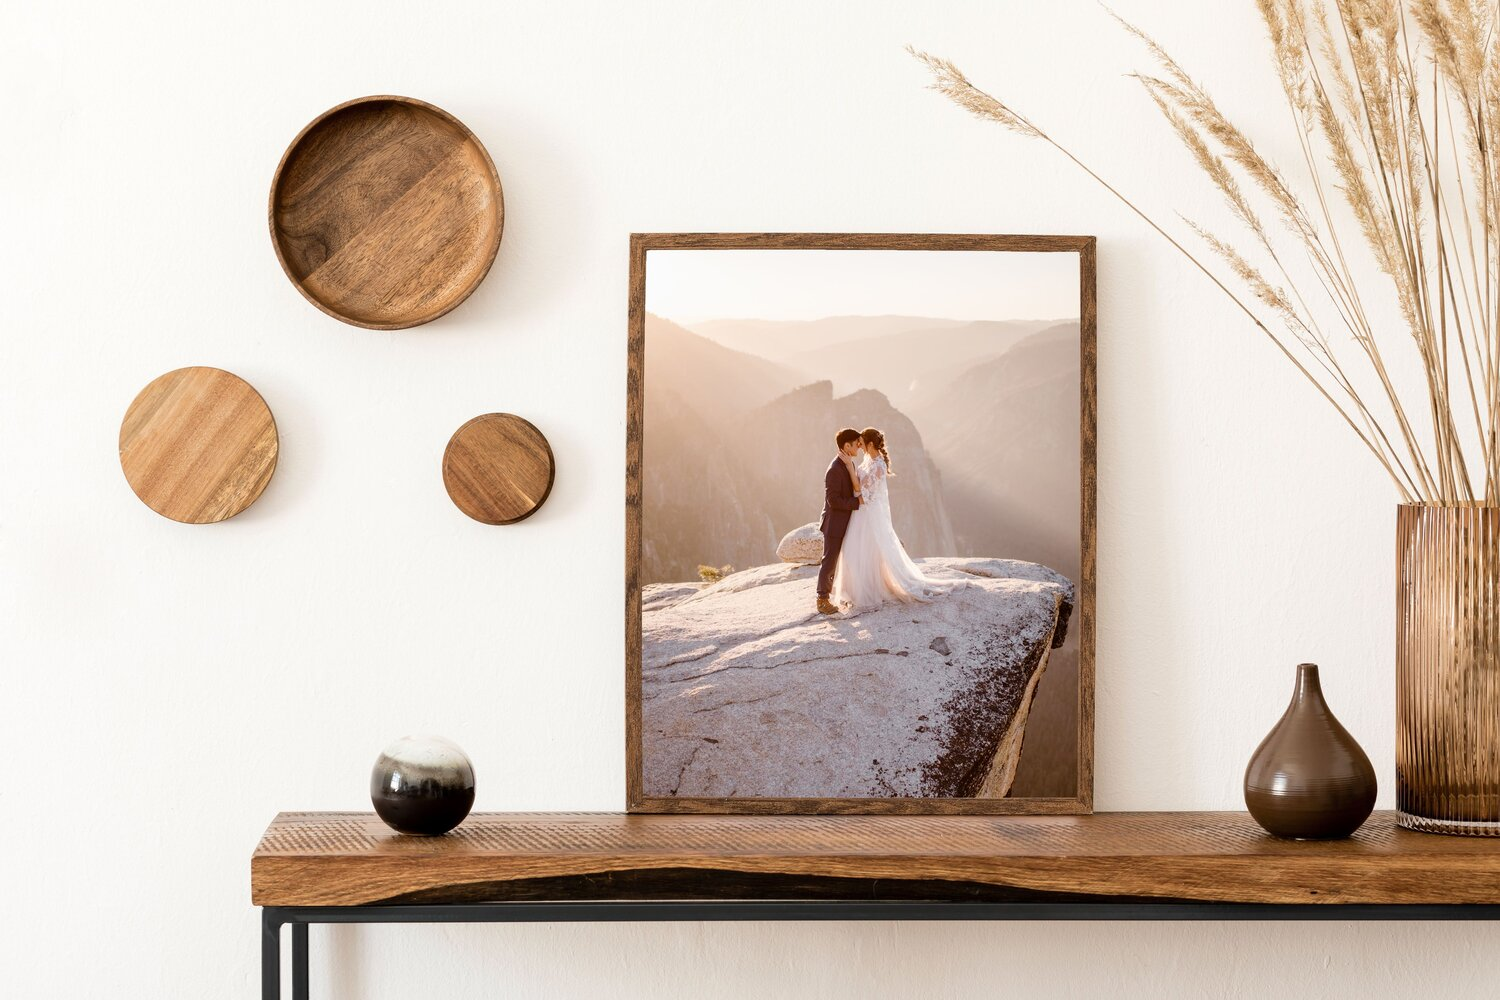 A wedding photo in a picture frame sitting on a table.